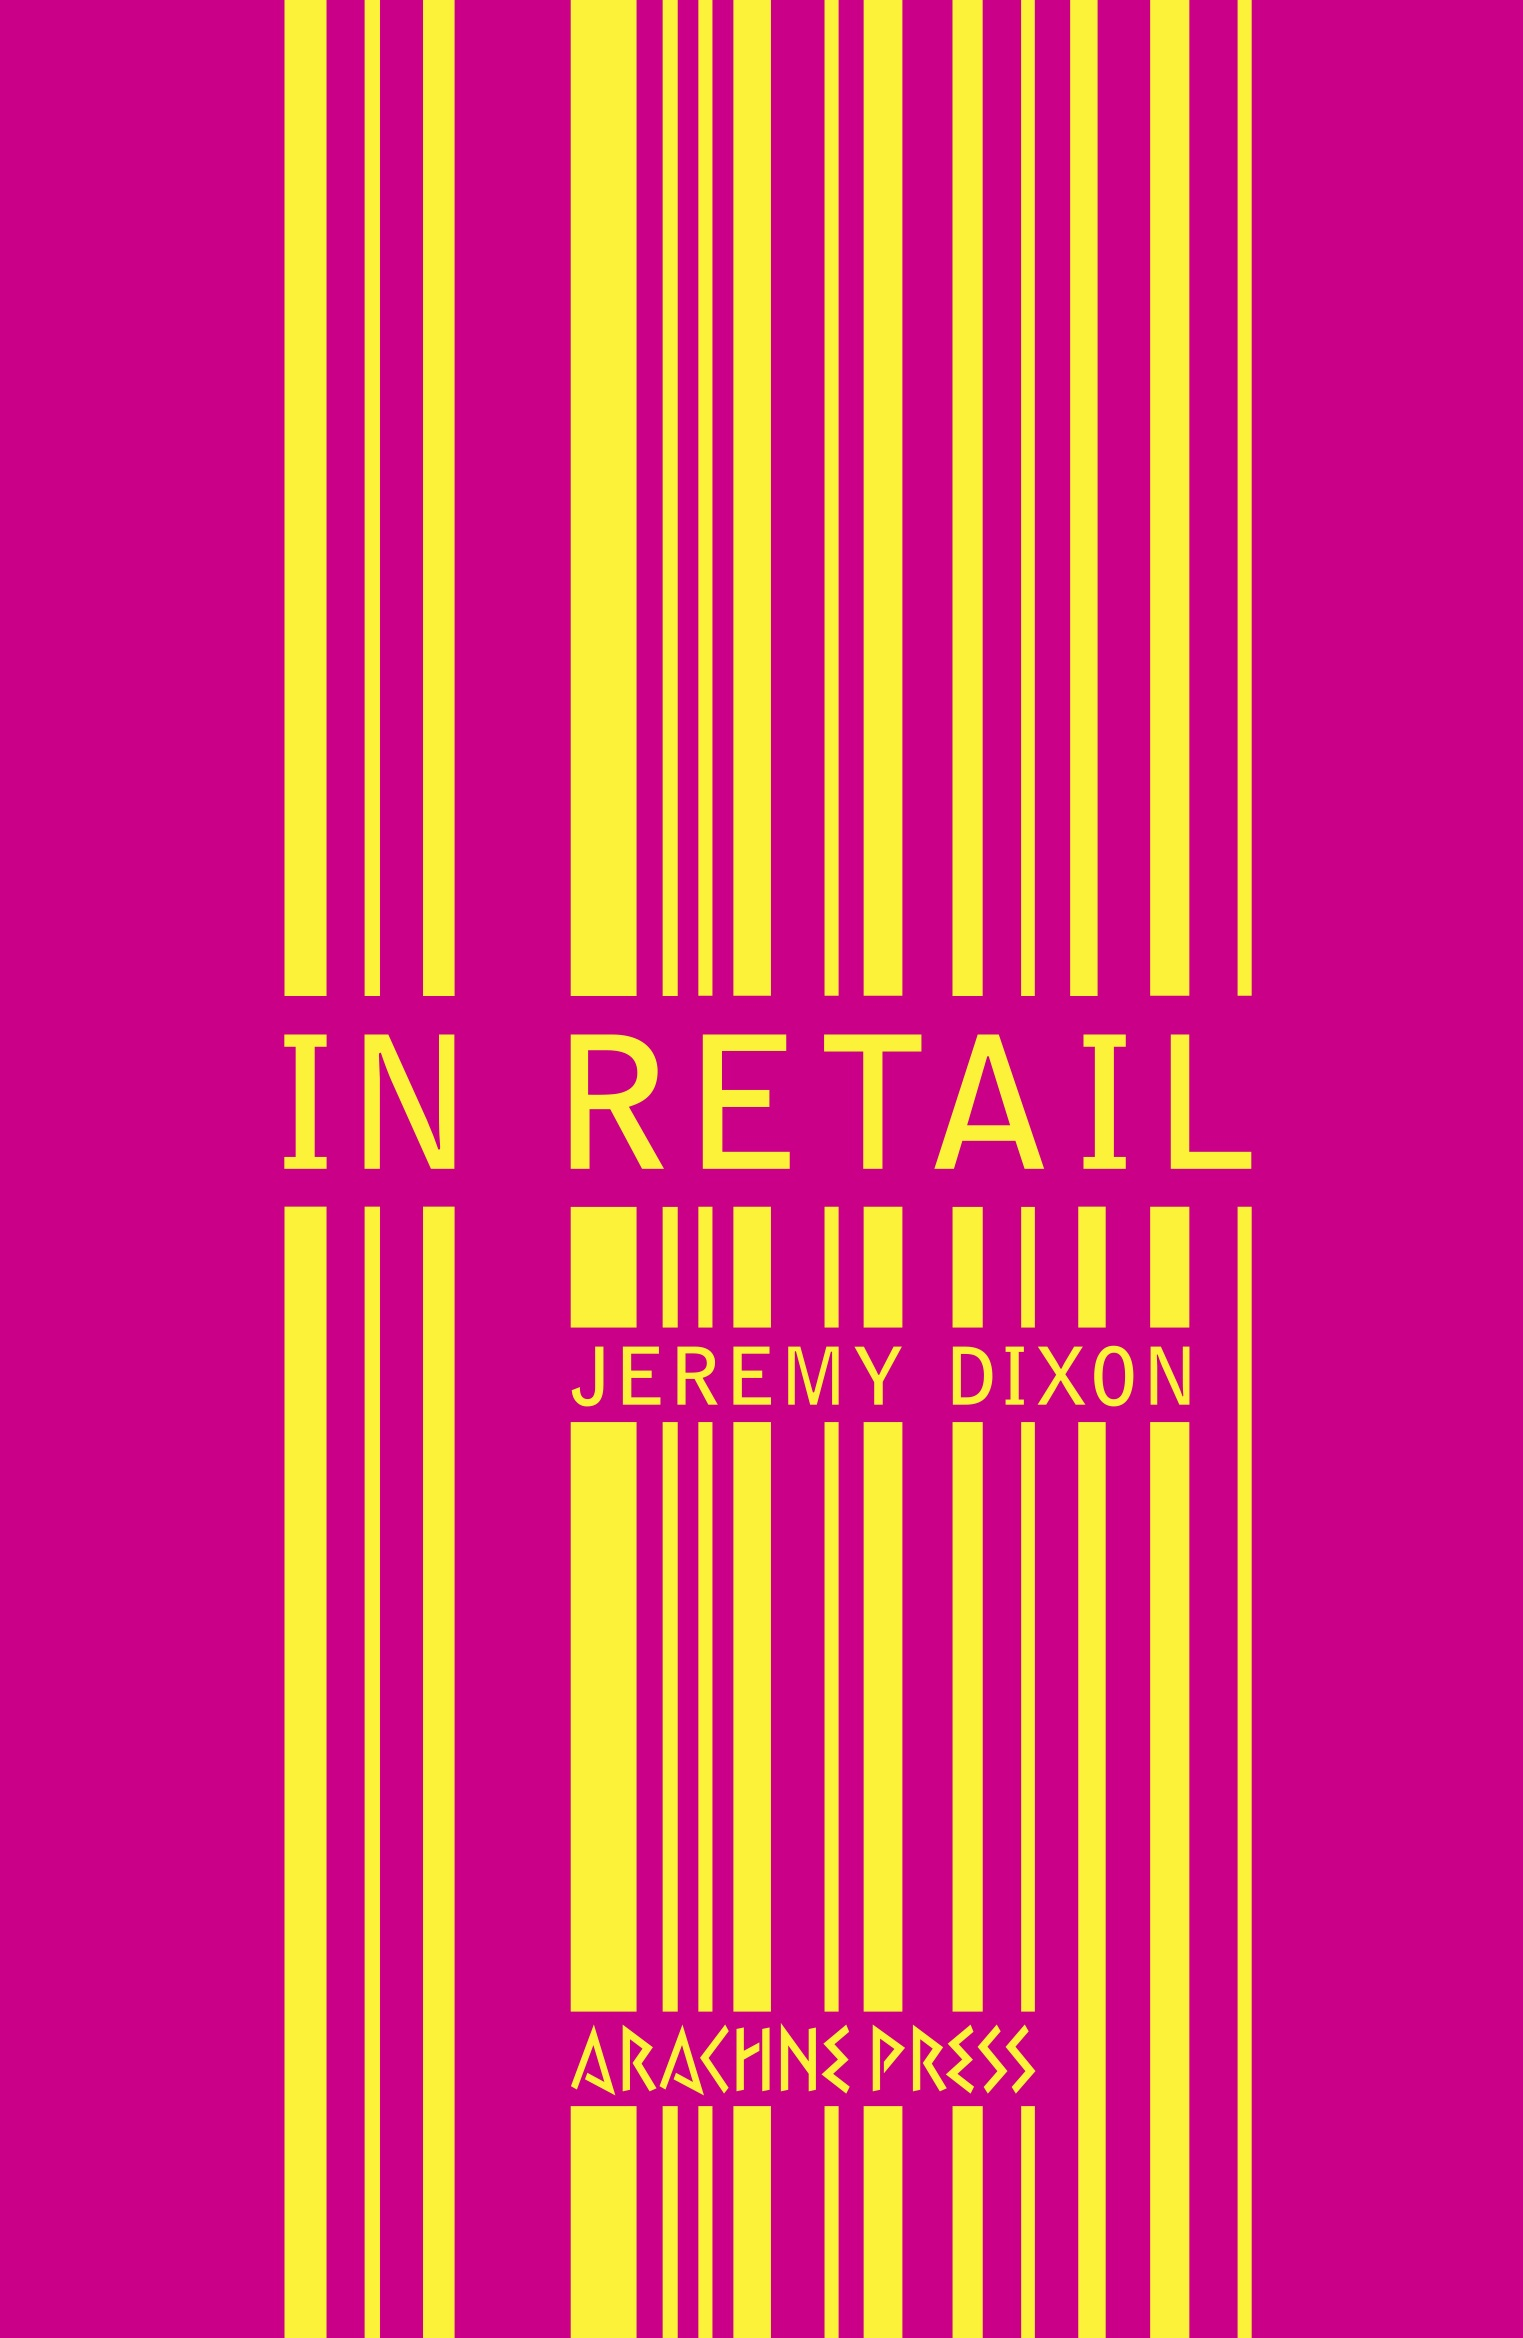 In Retail cover